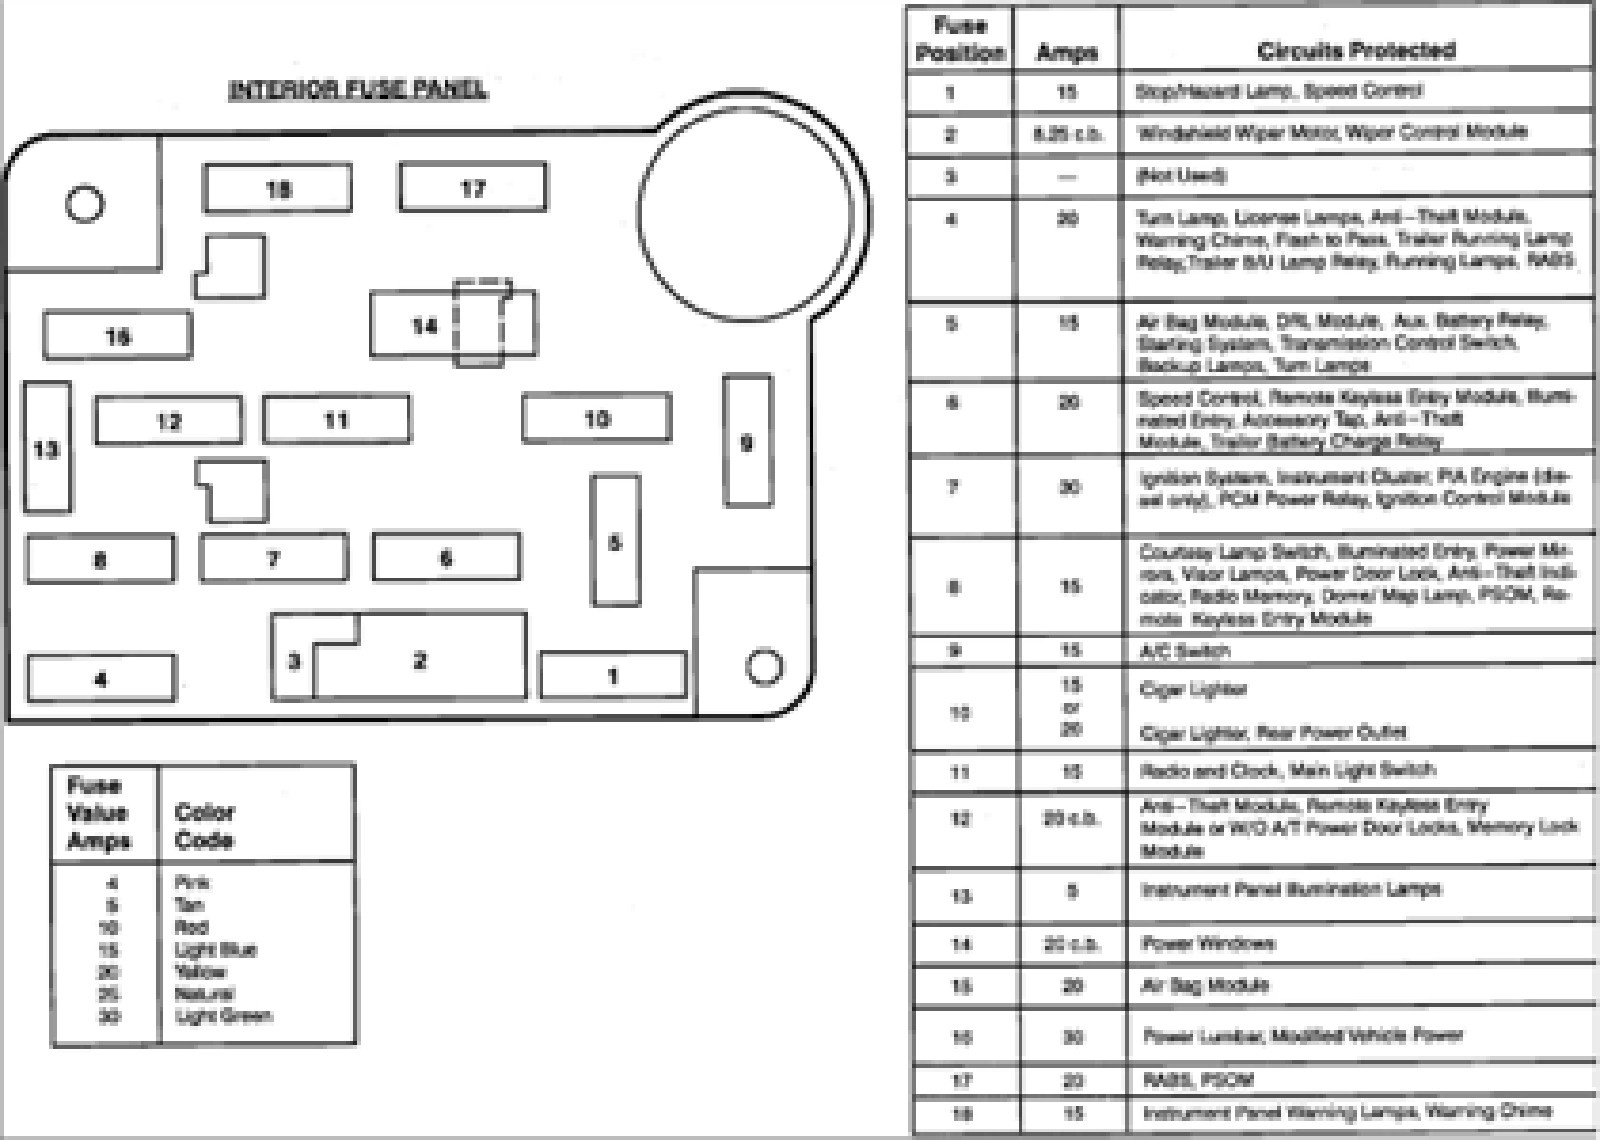 ford e 150 questions fuse diagram for a 1993 ford econoline van rh cargurus com 1997 ford f150 fuse box diagram 1997 ford f150 fuse box diagram